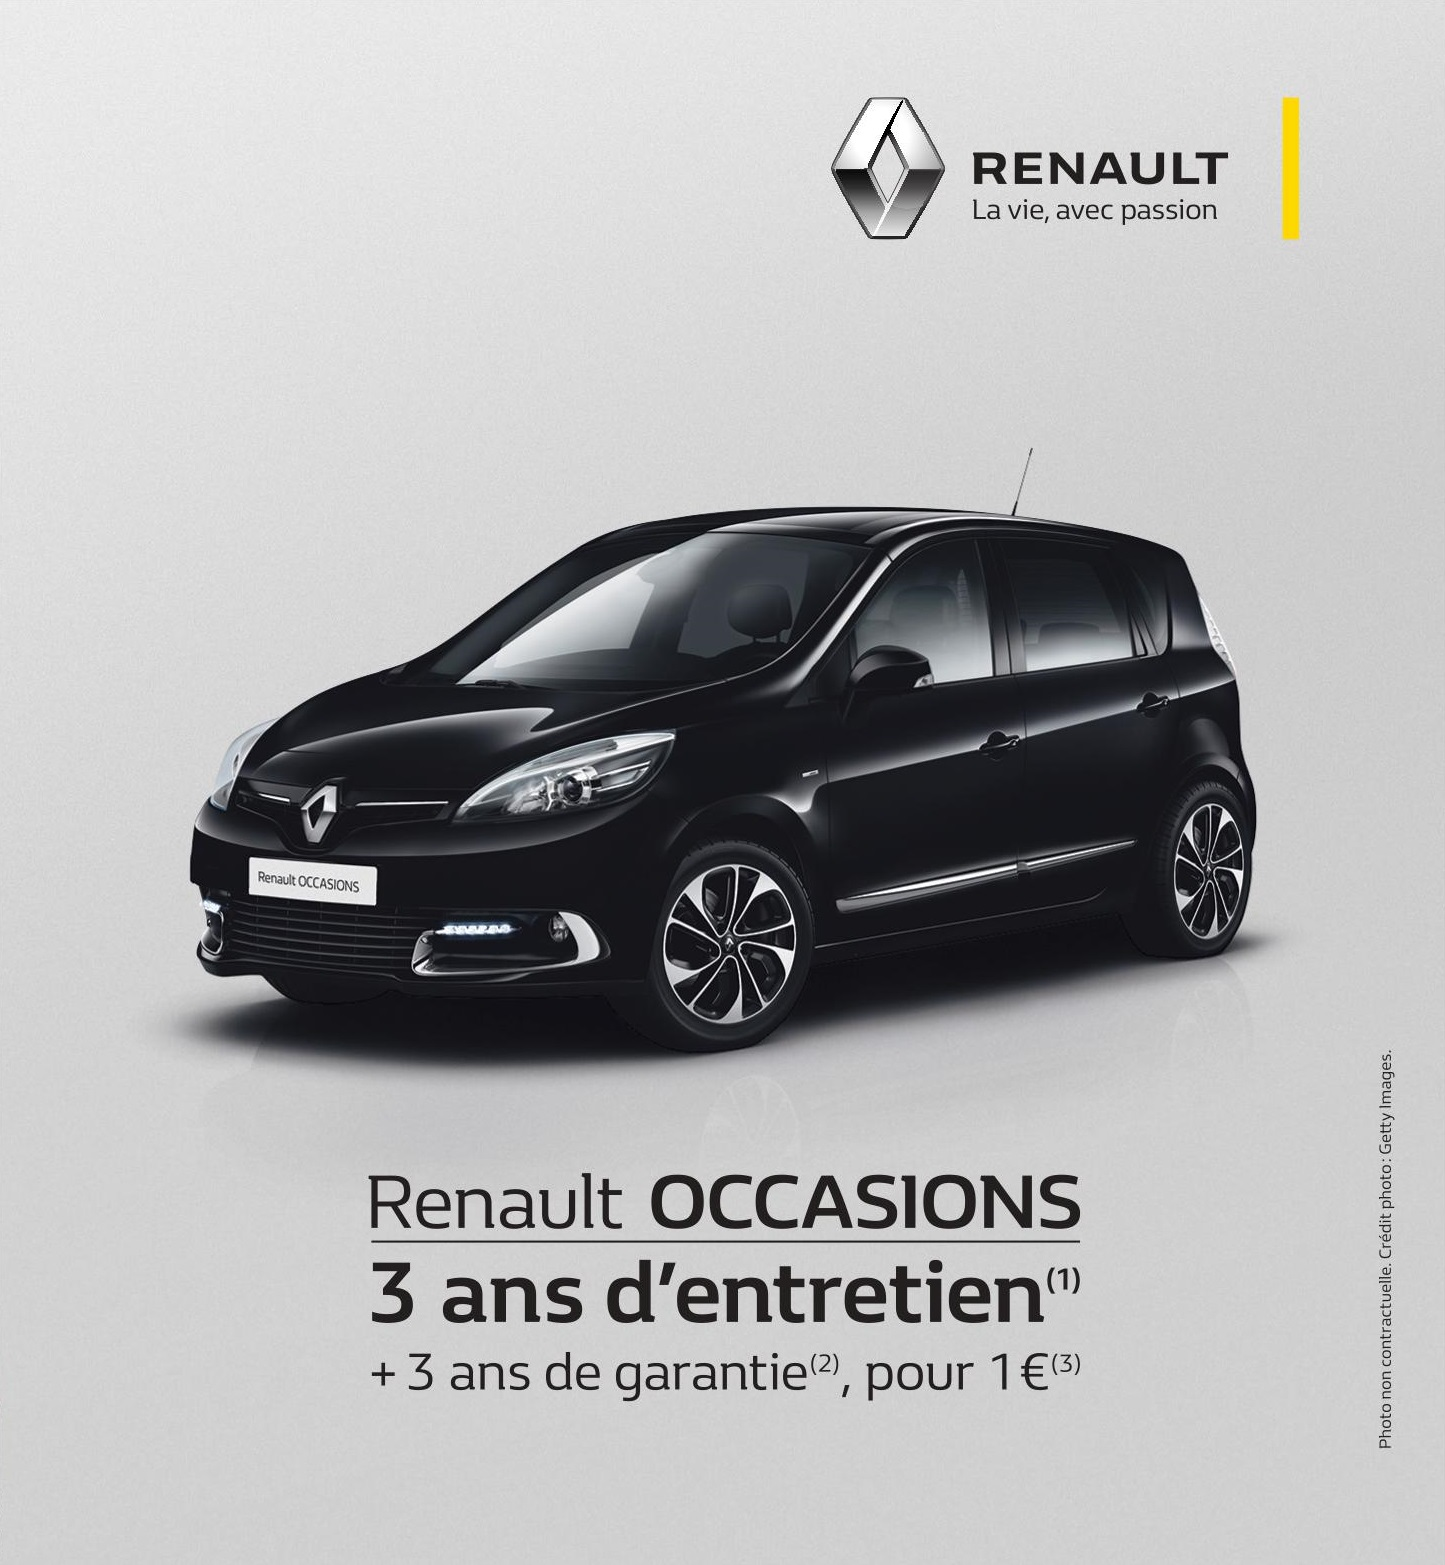 renault koleos occasion le mans renault le mans. Black Bedroom Furniture Sets. Home Design Ideas